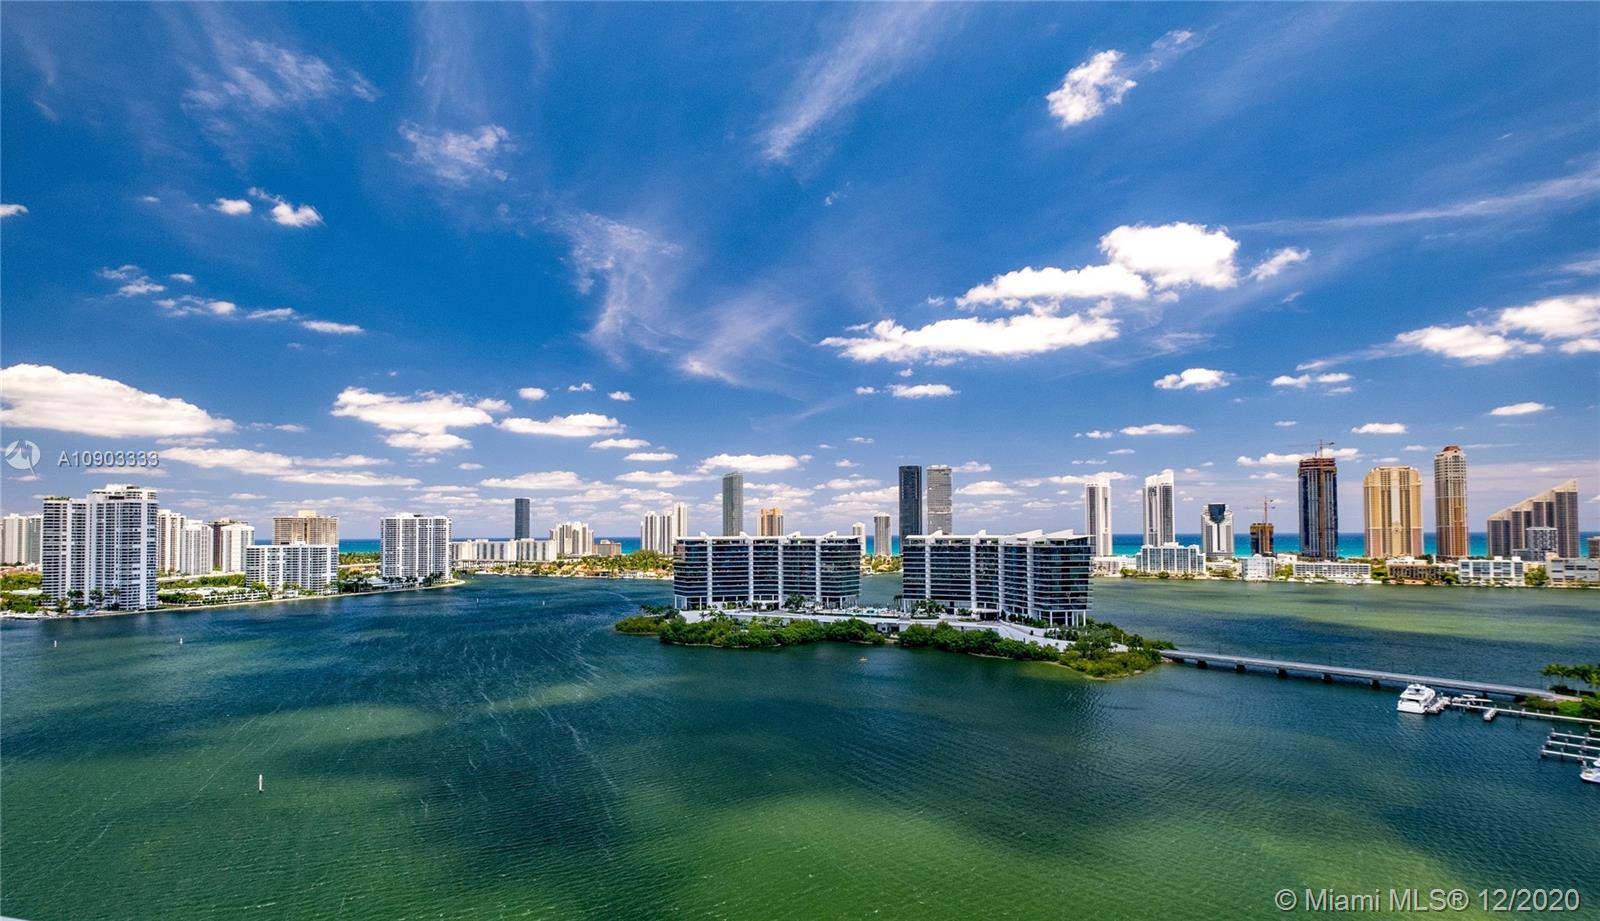 Nested at PRIVE Condominium on PRIVE Island, where privacy & elegance come together. 504N is a fantastic flow-through unit with private elevators & foyer, 2bedrooms/2.5bath, 2 balconies, 1 parking space, 1 storage room in garage. Unobstructed intracoastal, ocean and city views.. Exclusive lifestyle amenities include 2 outdoor heated pools, tennis courts, wine & cigar rooms, library & party rooms, Spa, state of the art Gym, Cafe, children & teen's room & more. Unit is finished with PORCELAIN FLOORS throughout, built-in wooden CLOSETS & electric BLINDS. PLEASE CLICK ON VIRTUAL TOUR!!